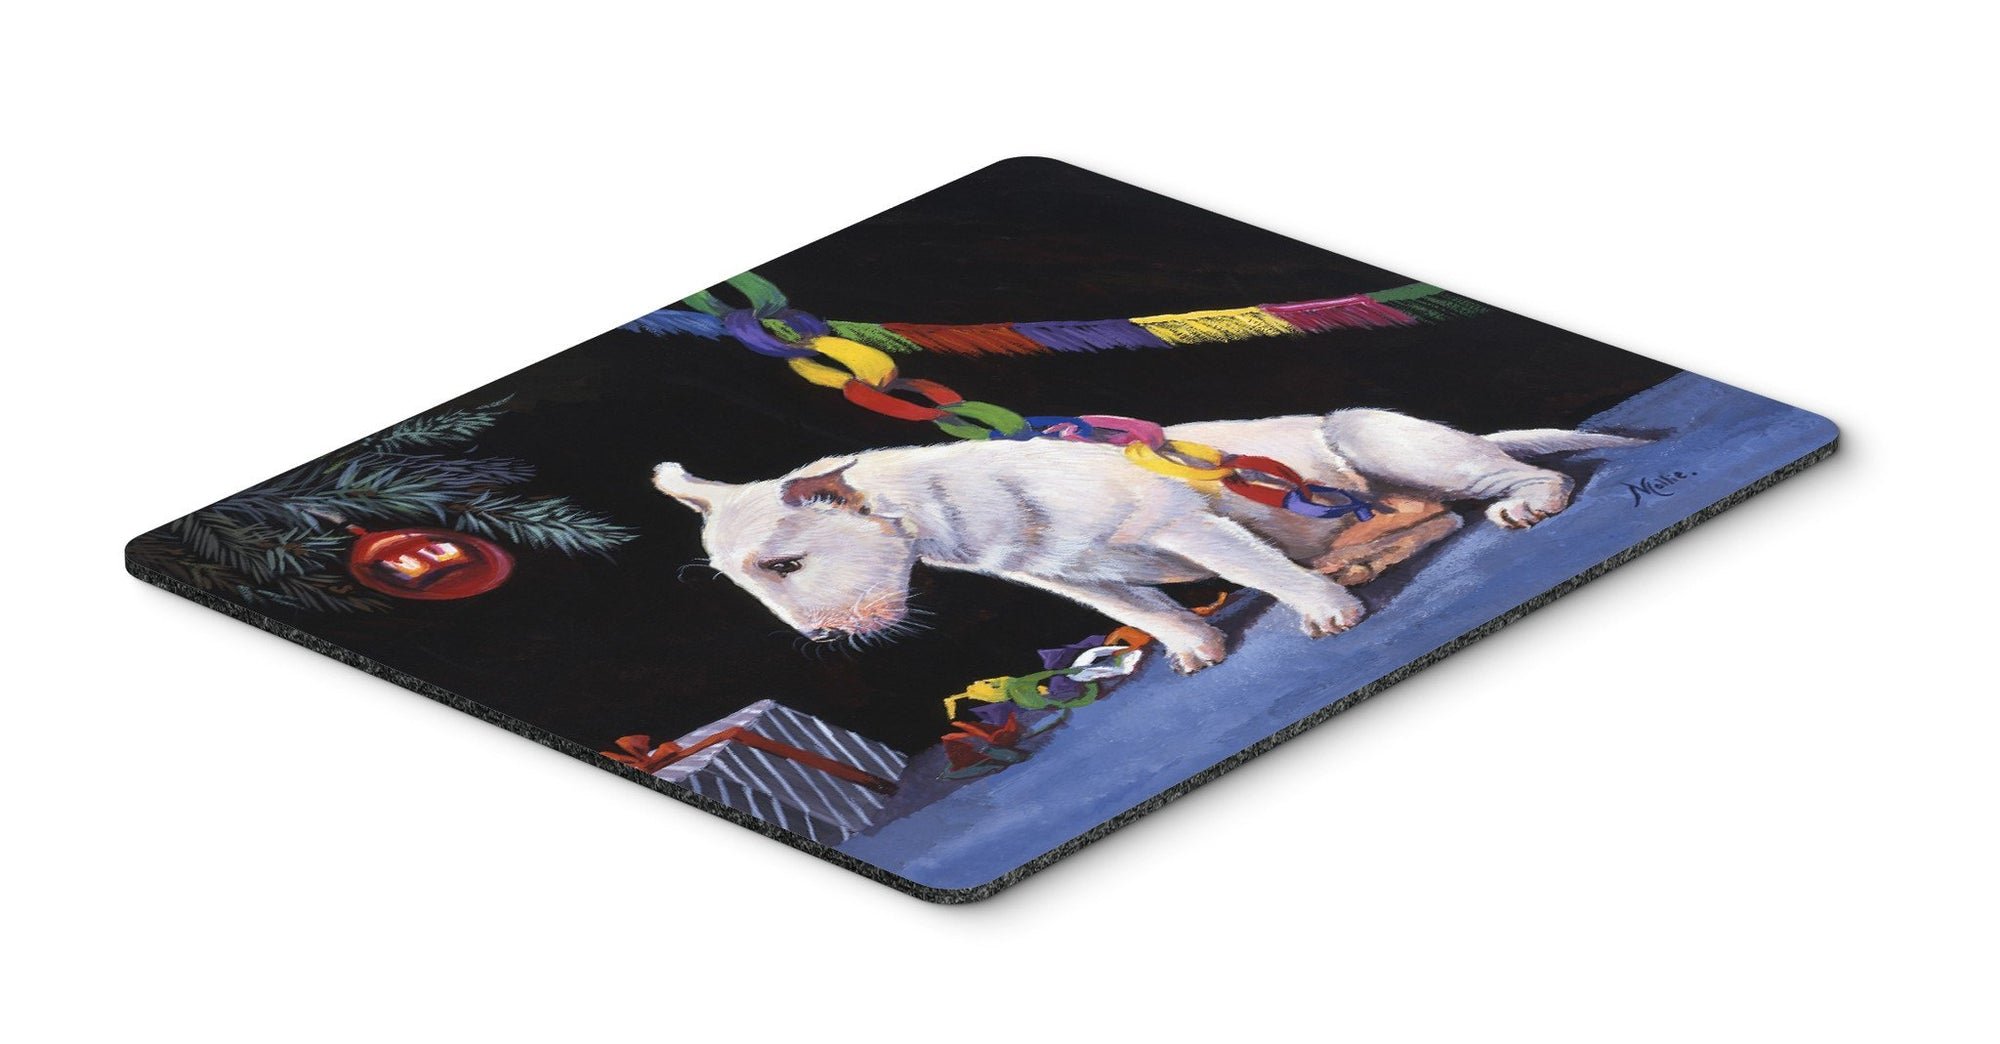 Bull Terrier under the Christmas Tree Mouse Pad, Hot Pad or Trivet FMF0012MP by Caroline's Treasures